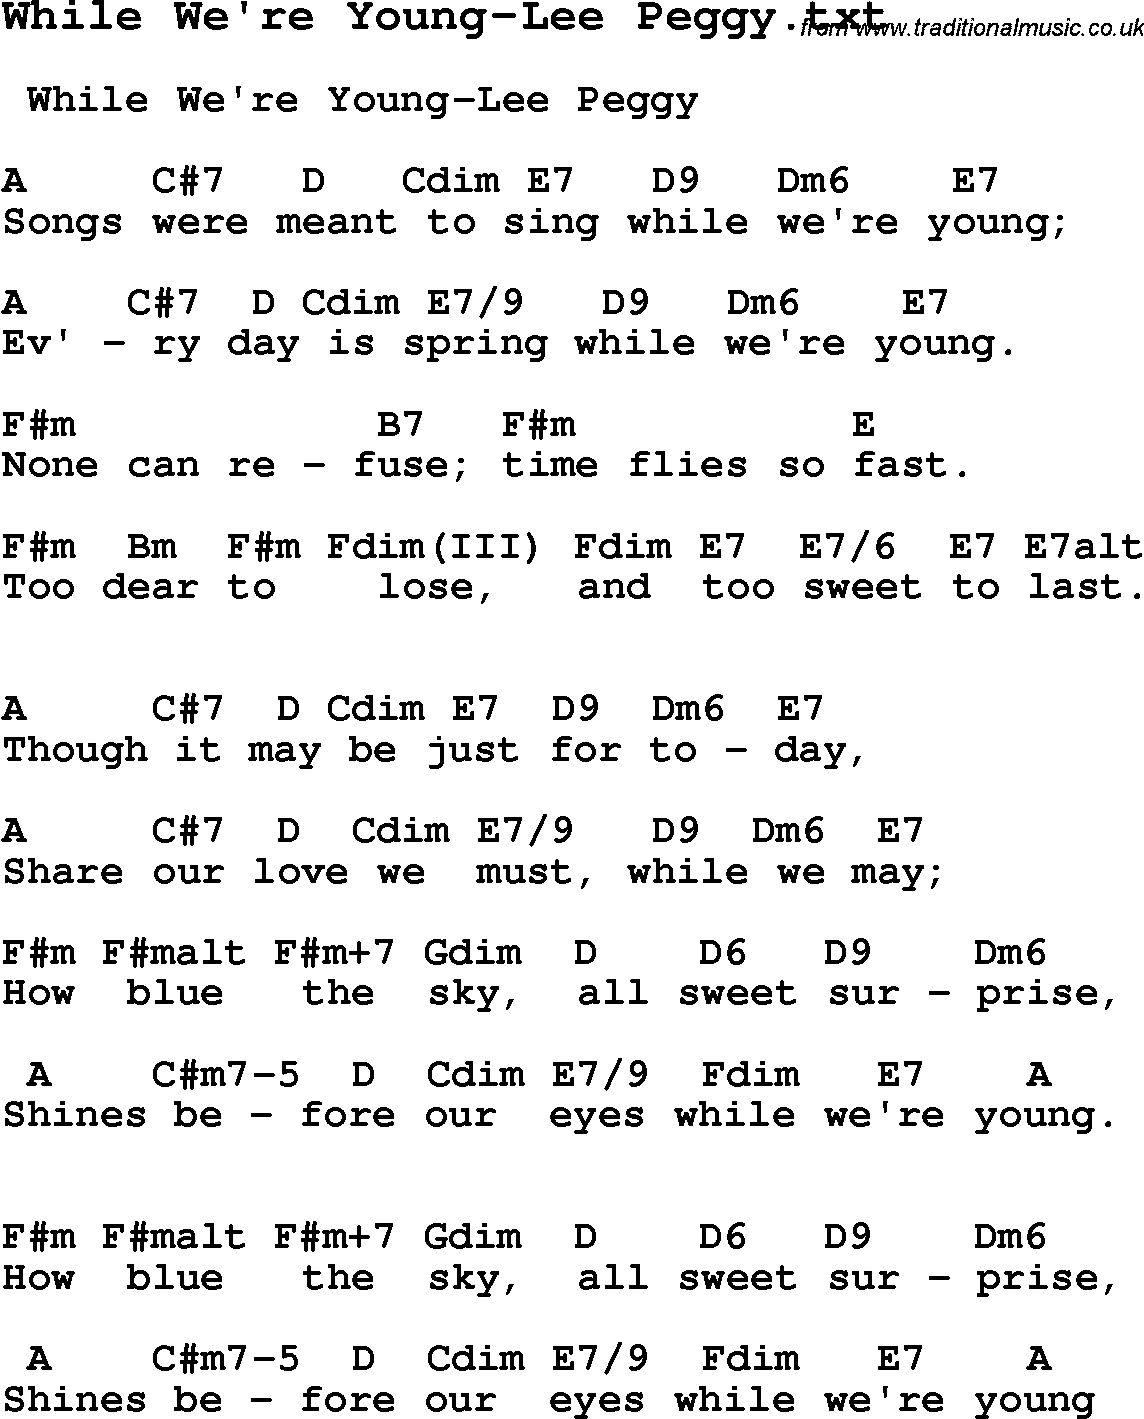 When We Were Young Chords Jazz Song While Were Young Lee Peggy With Chords Tabs And Lyrics